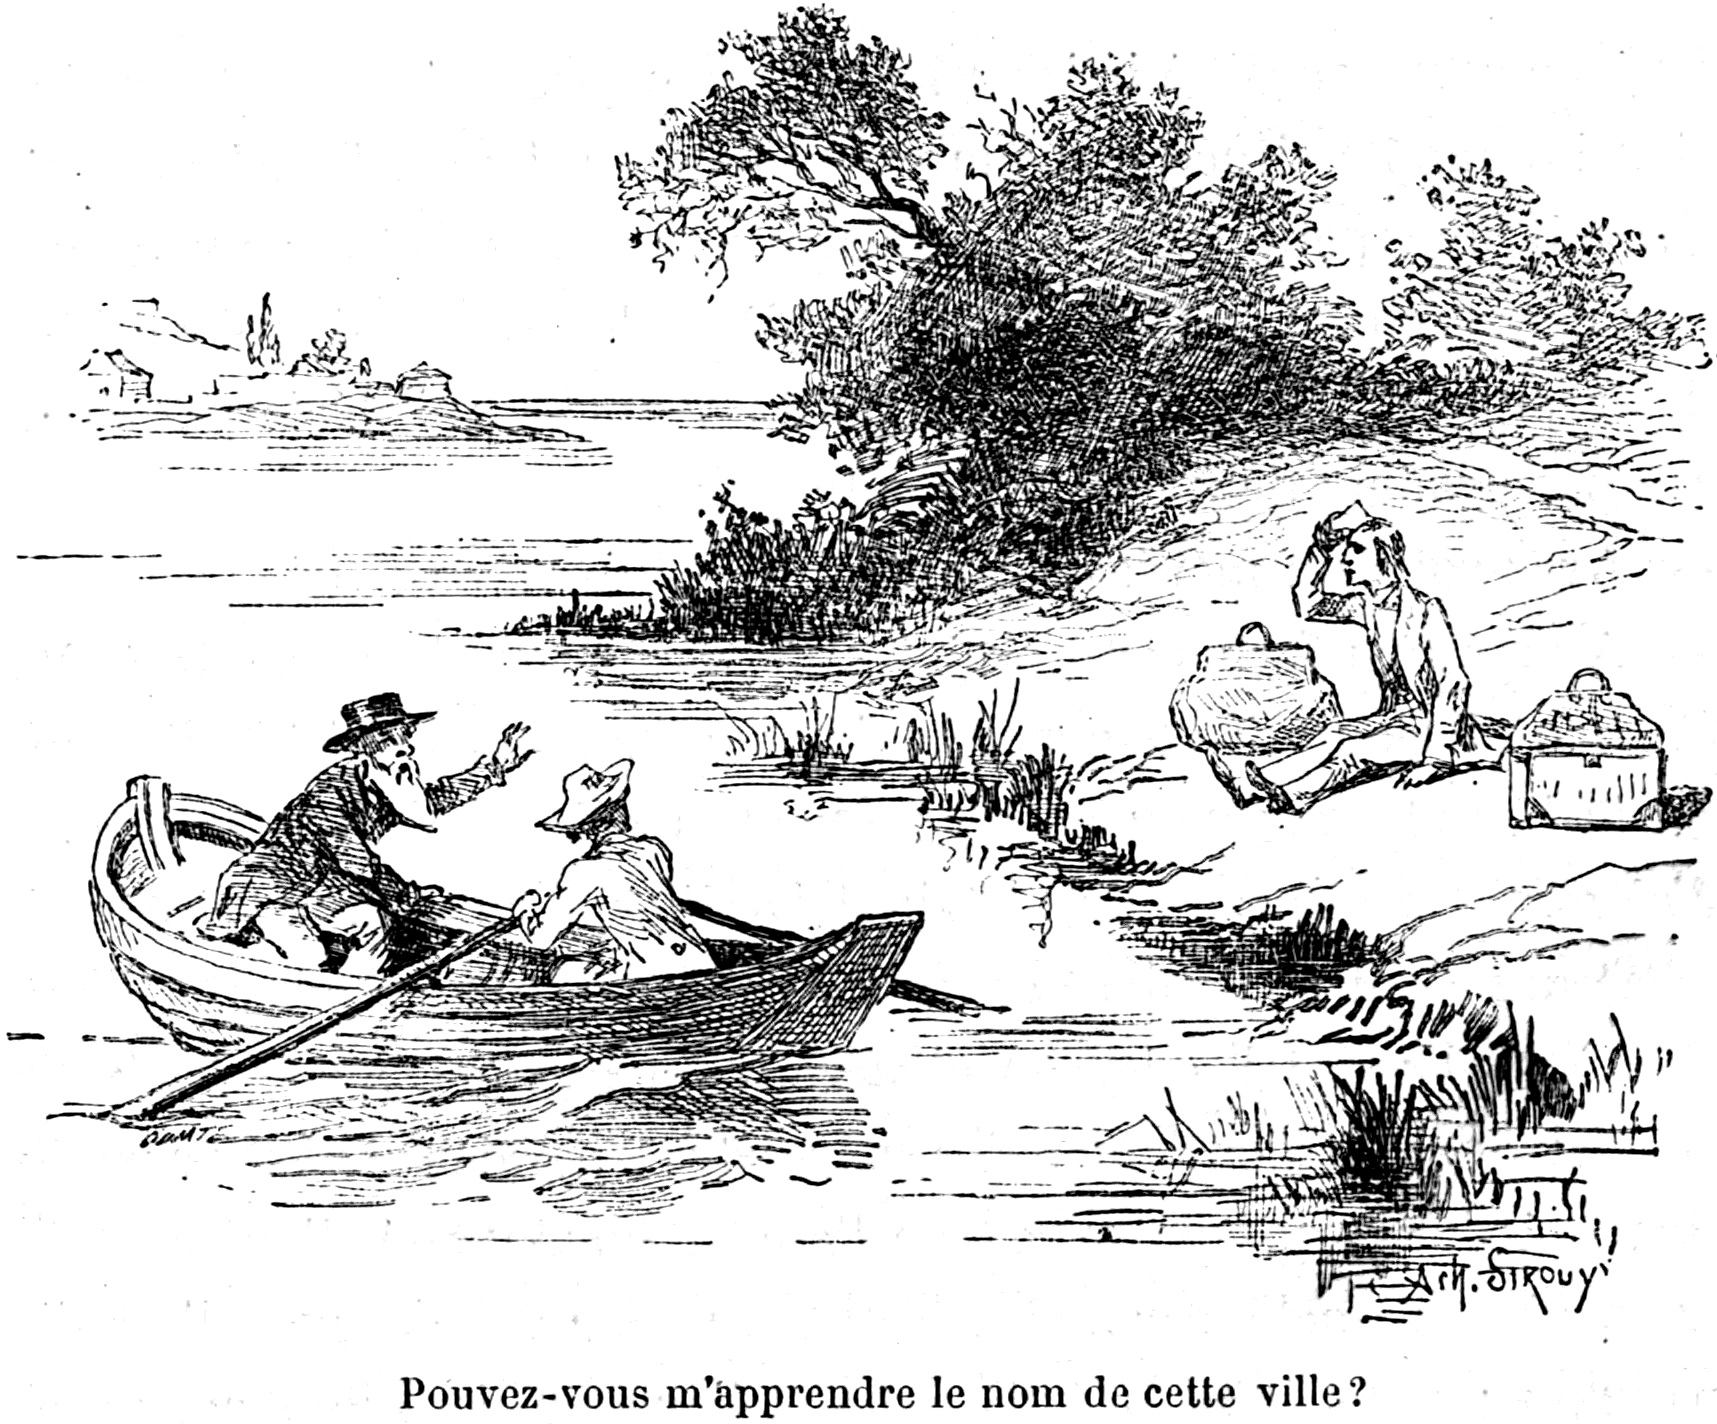 an essay on the adventures of huckleberry finn country or society Read this literature essay and over 88,000 other research documents adventures of huckleberry finn all children have a special place, whether chosen by a conscious decision or not this is a place where one.